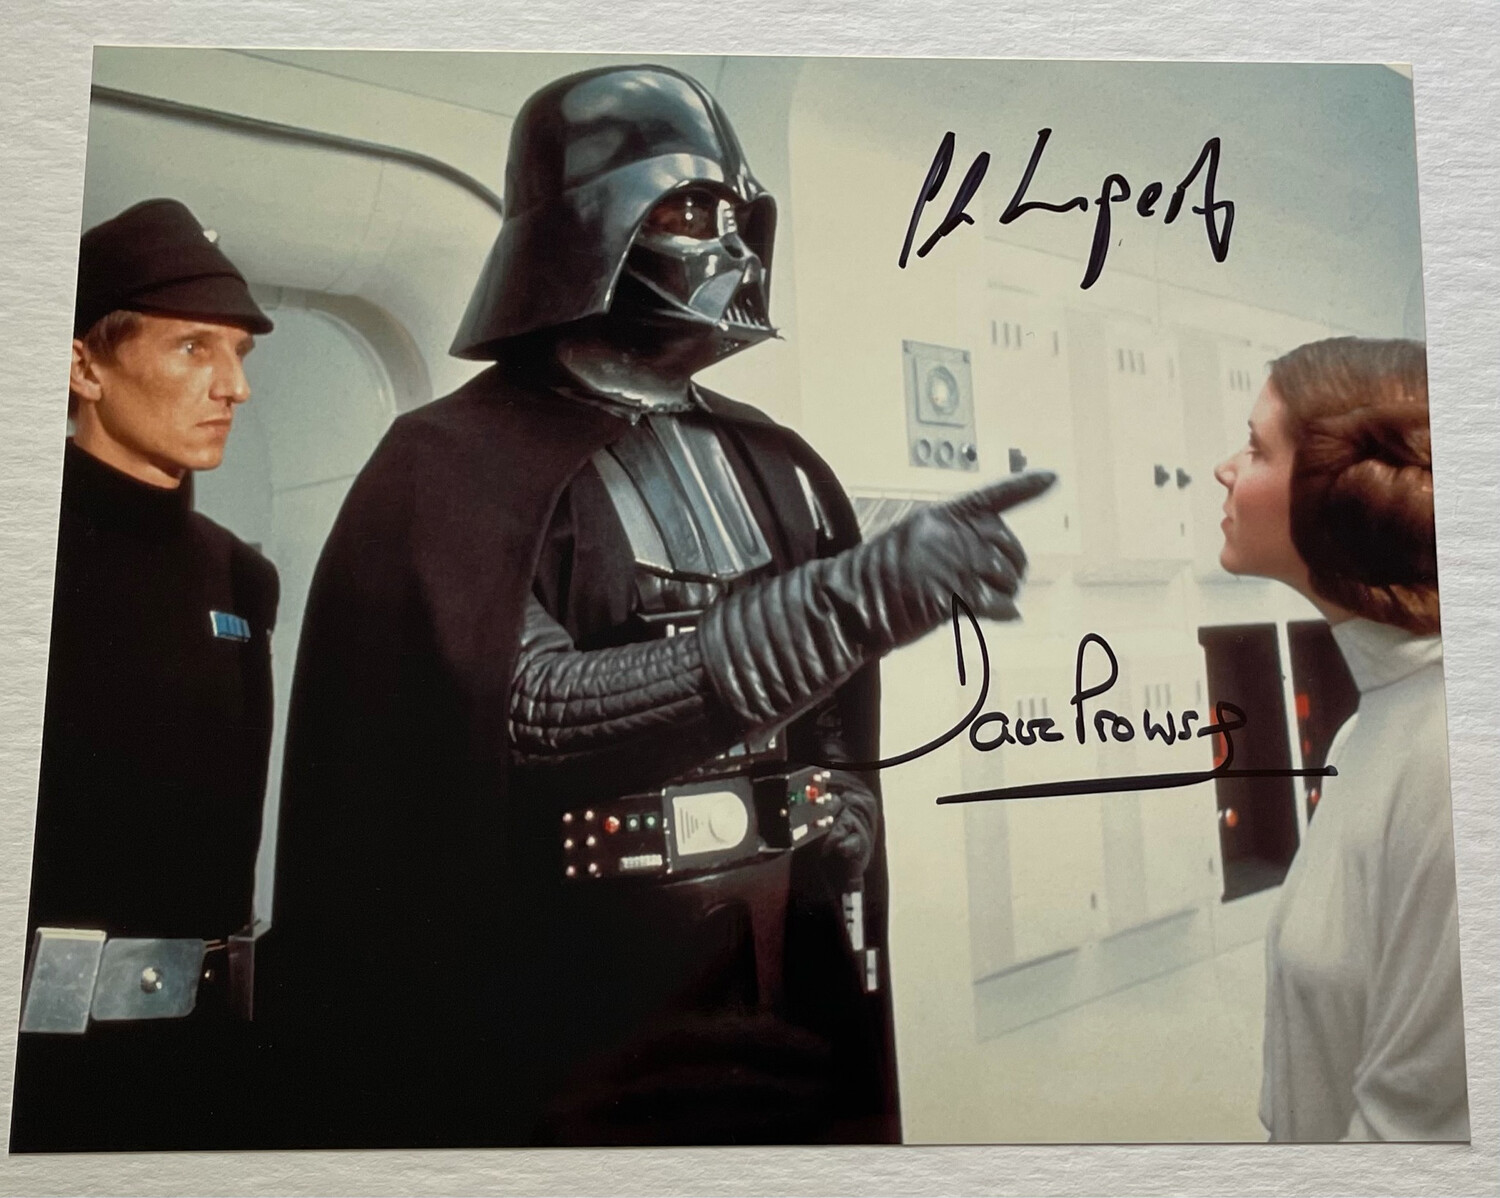 8X10 DARTH VADER PHOTO SIGNED BY DAVE PROWSE AND AL LAMPERT